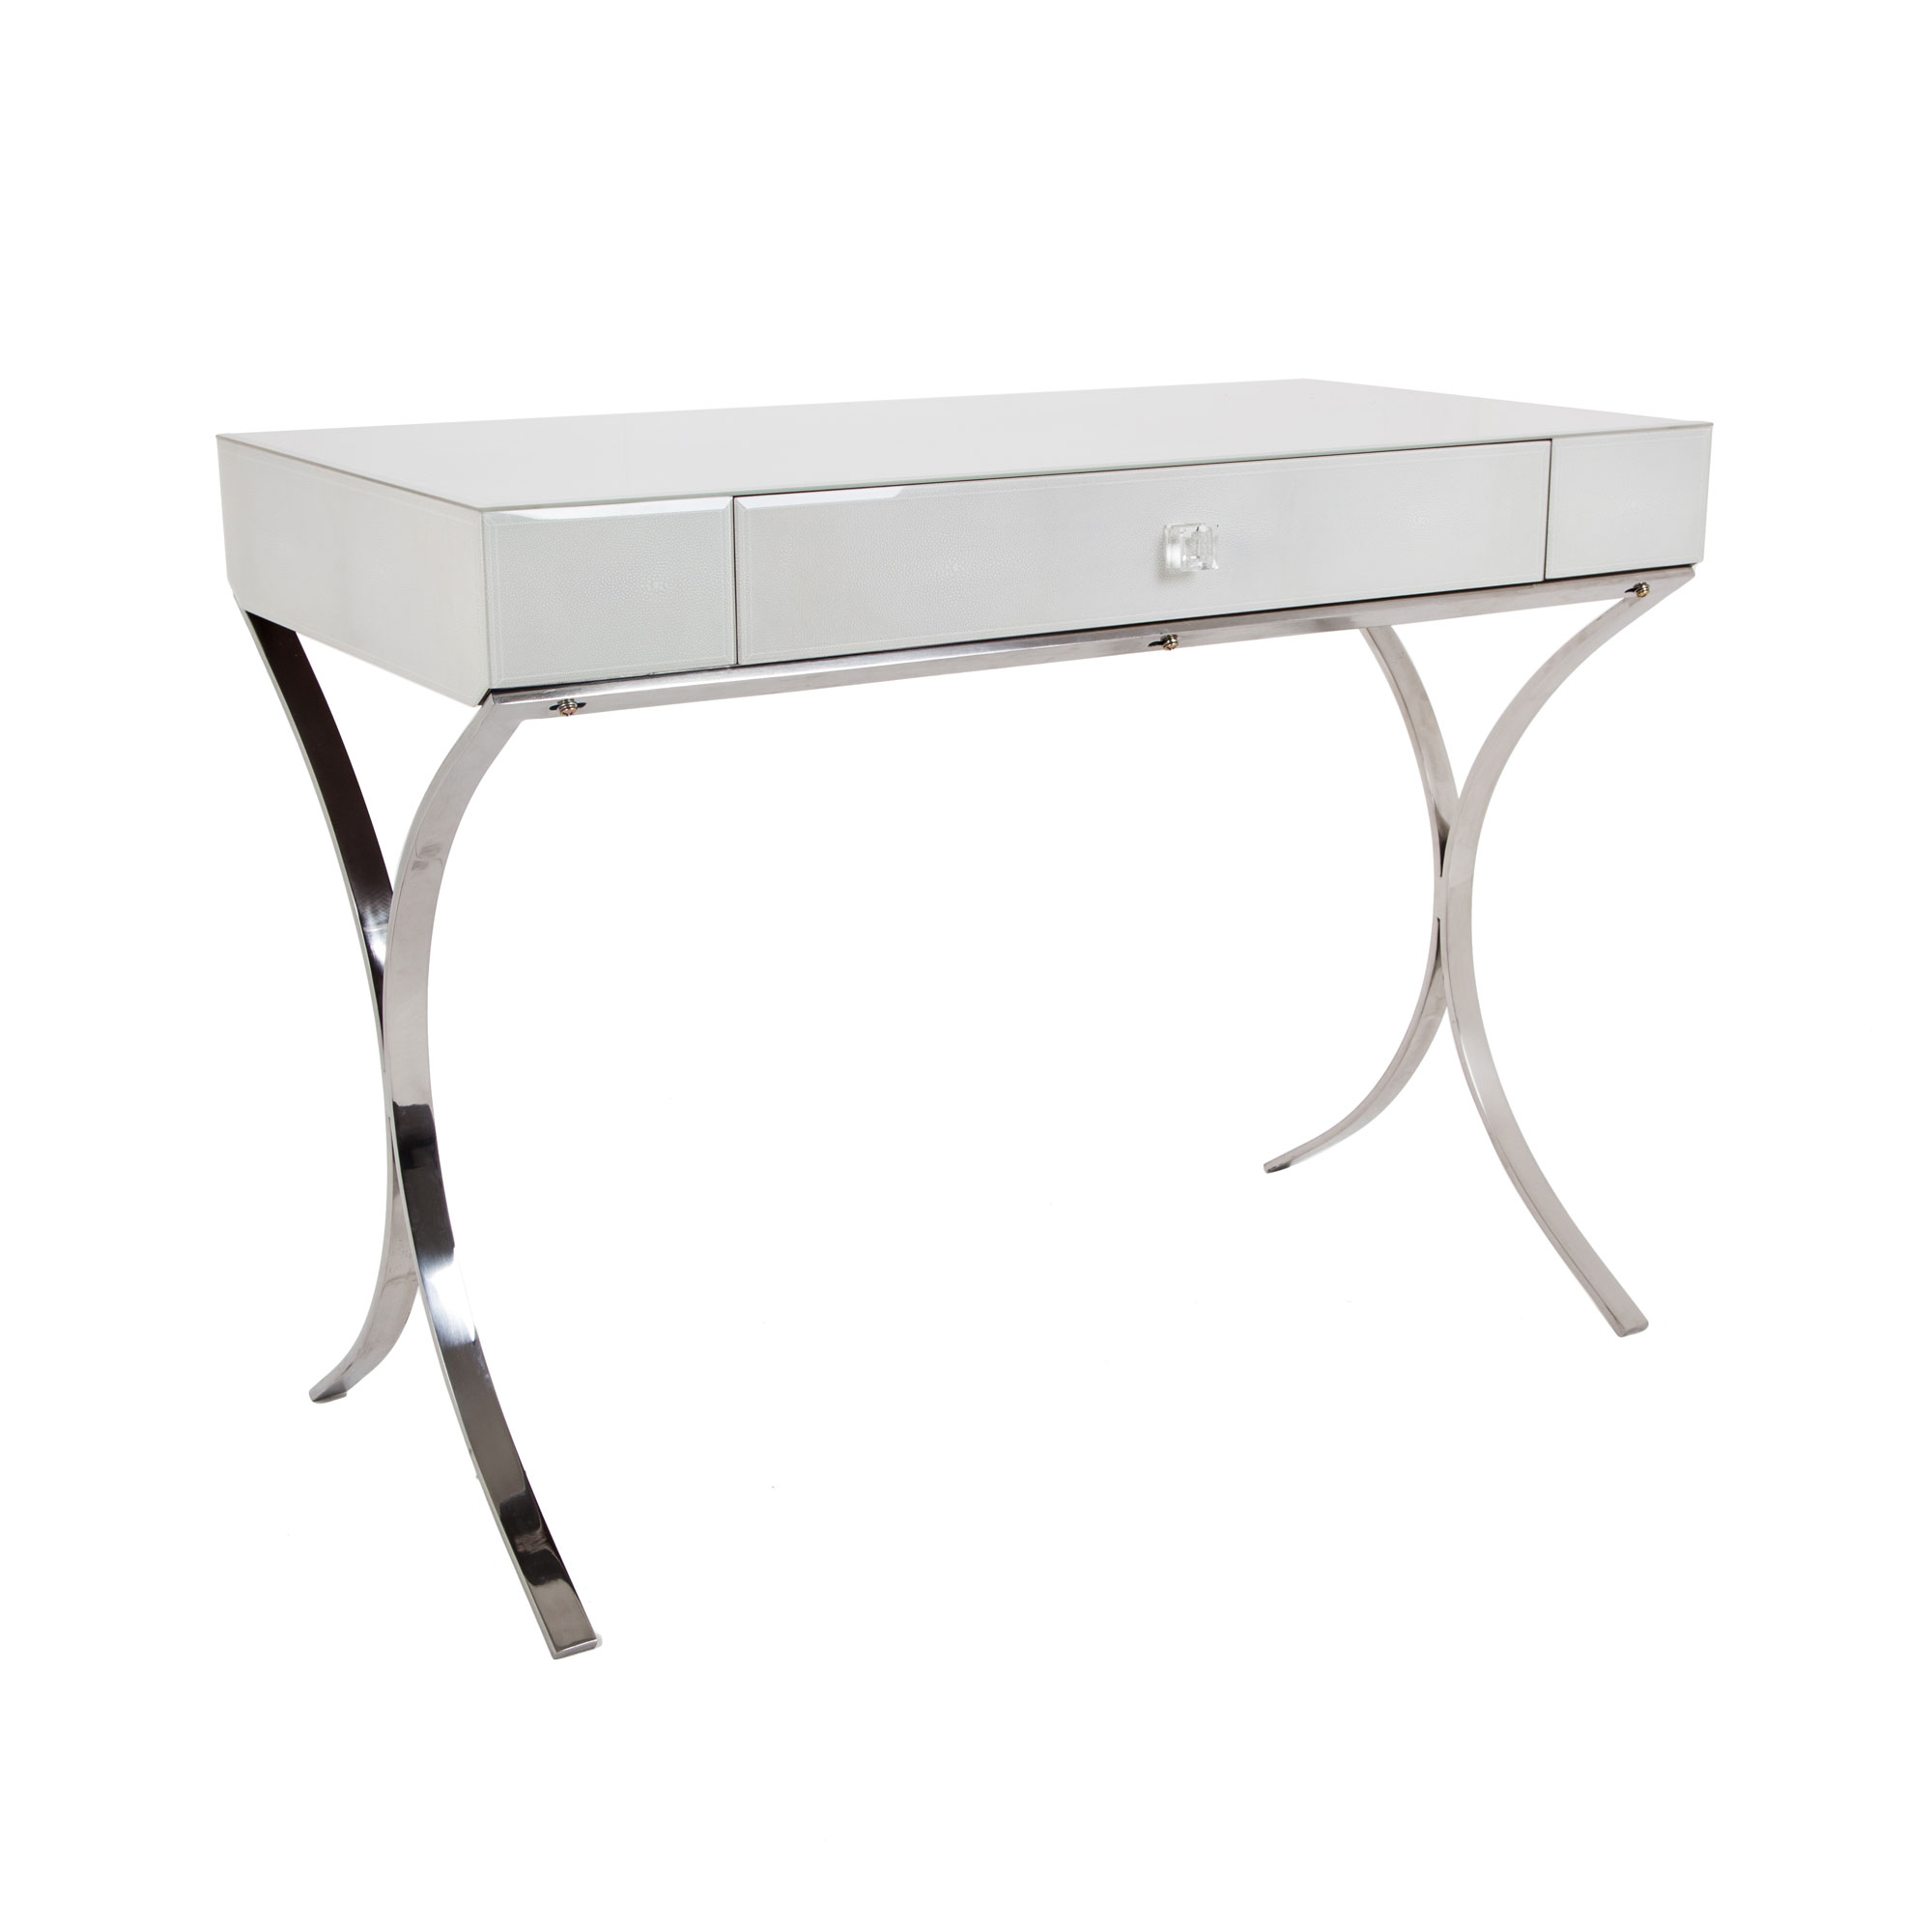 Iced dressing table with single drawer & stainless steel finish